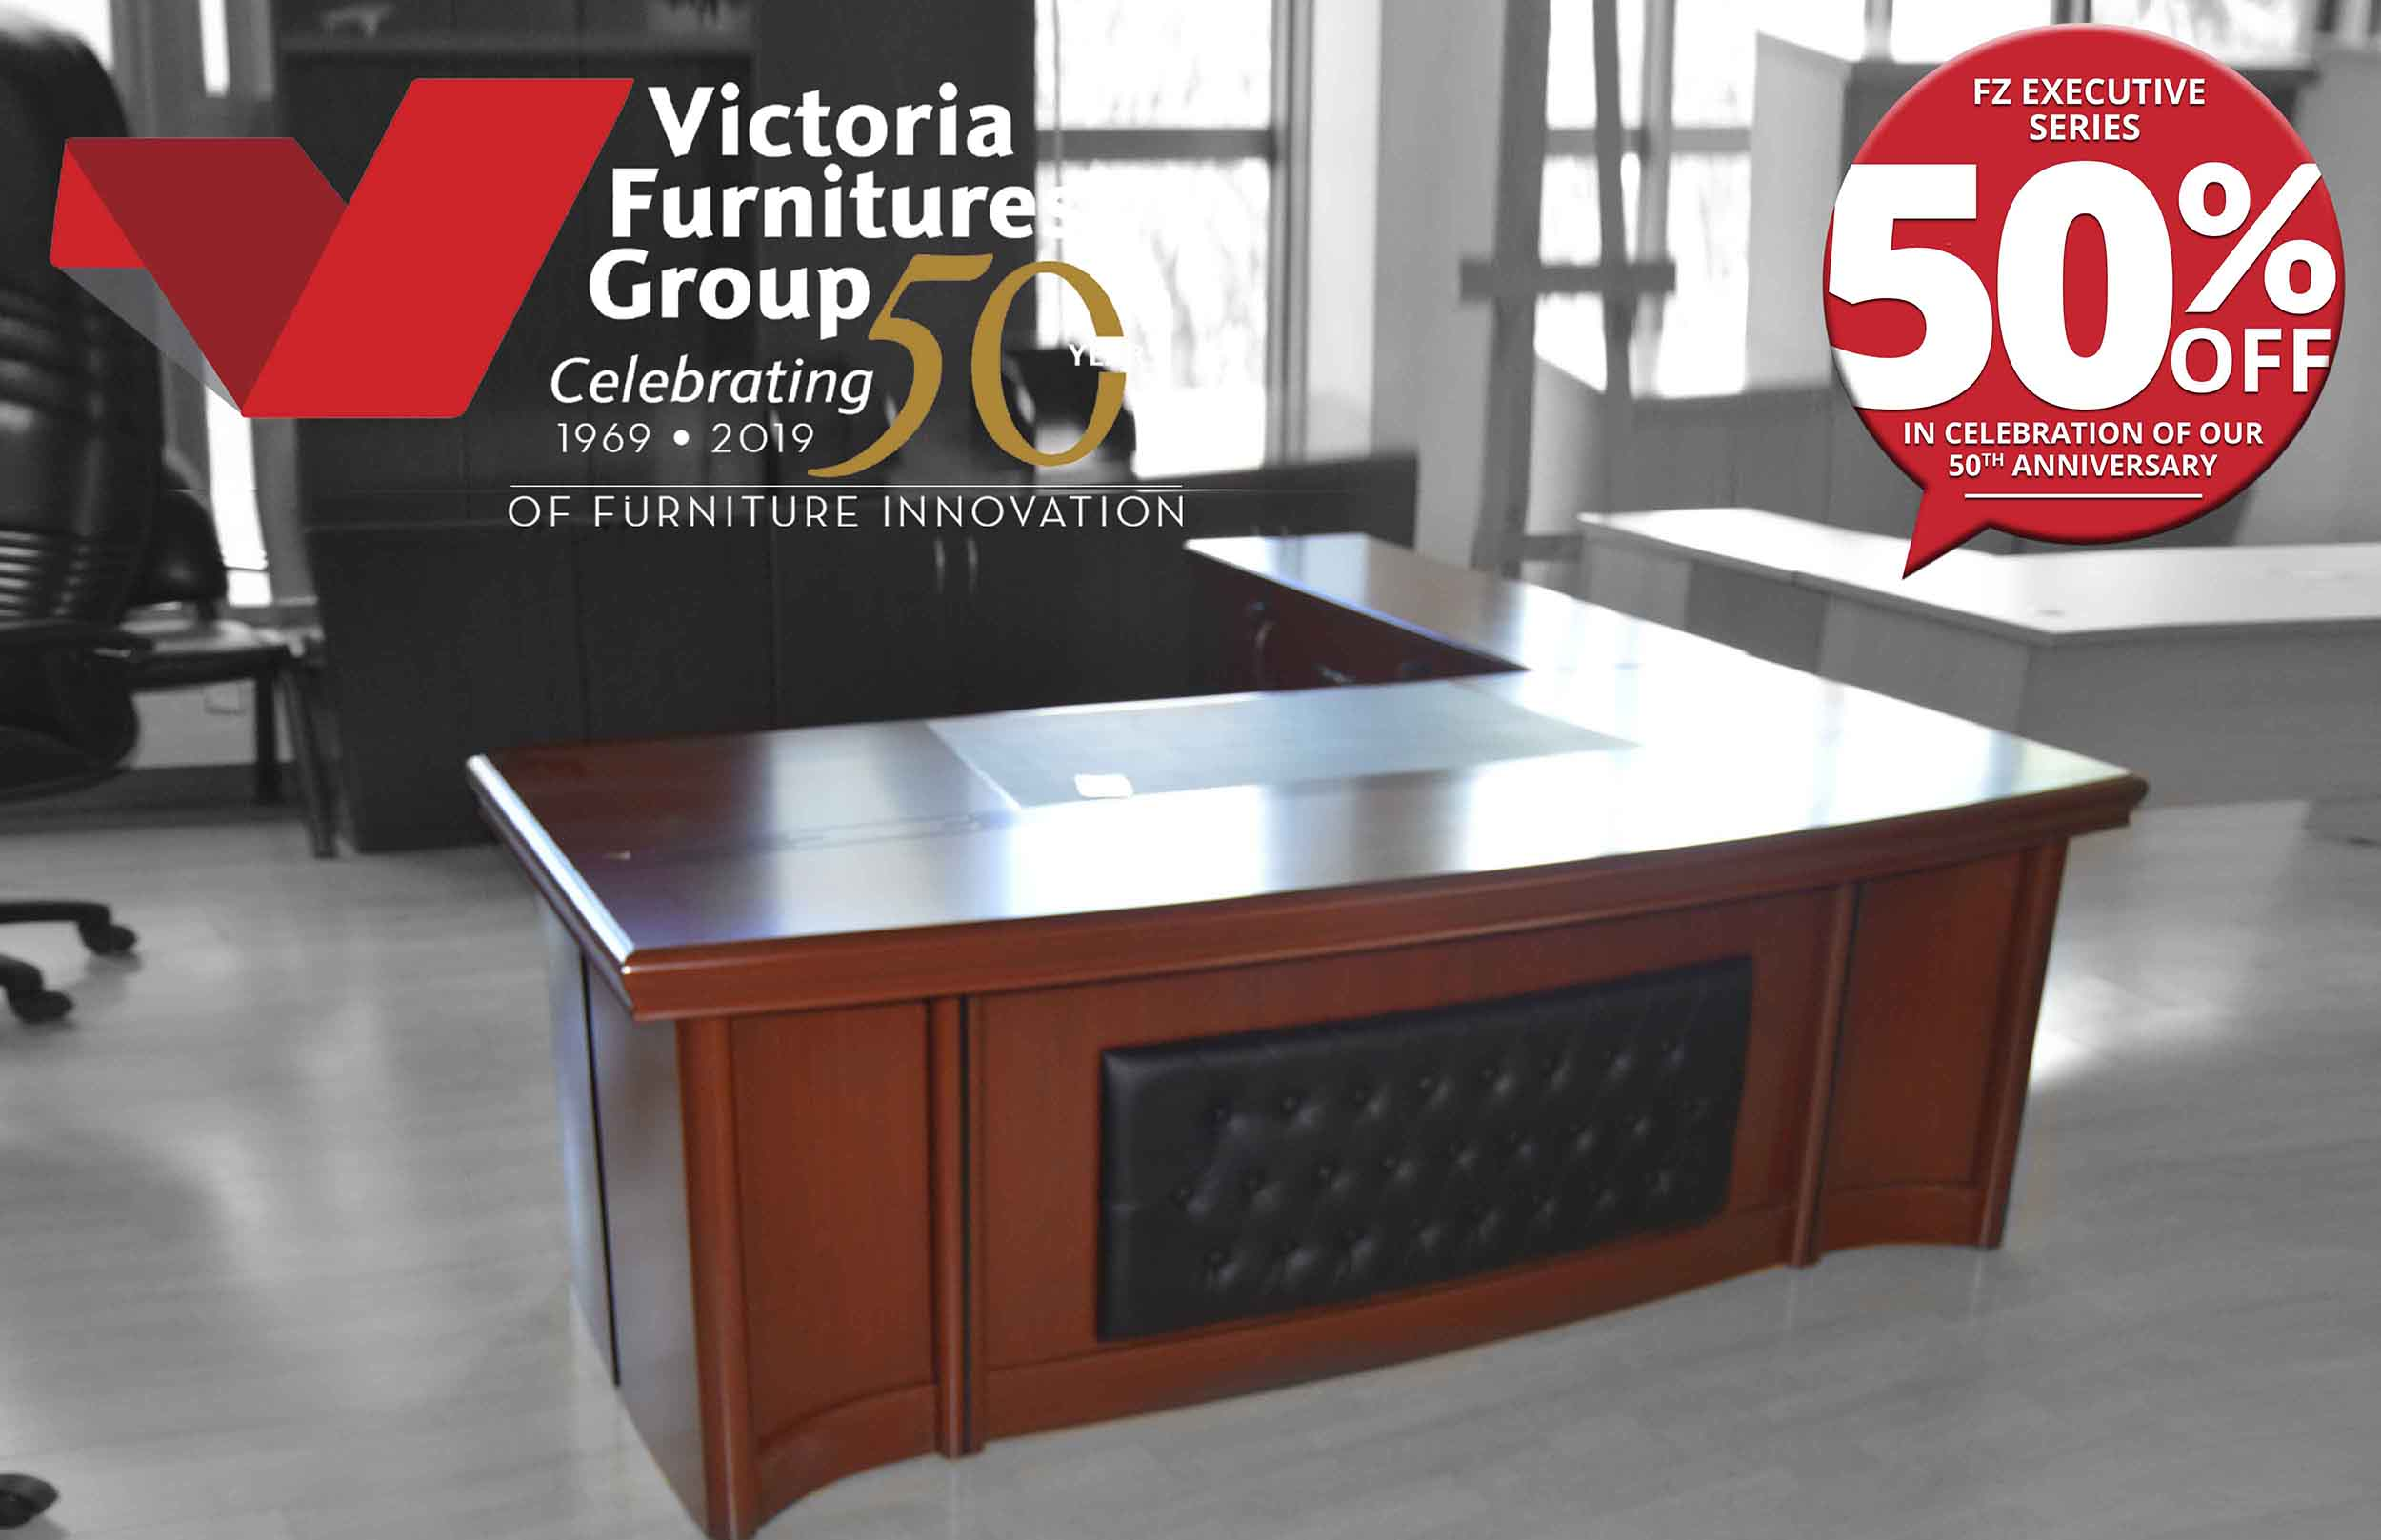 We bring you office furniture solutions doing this for